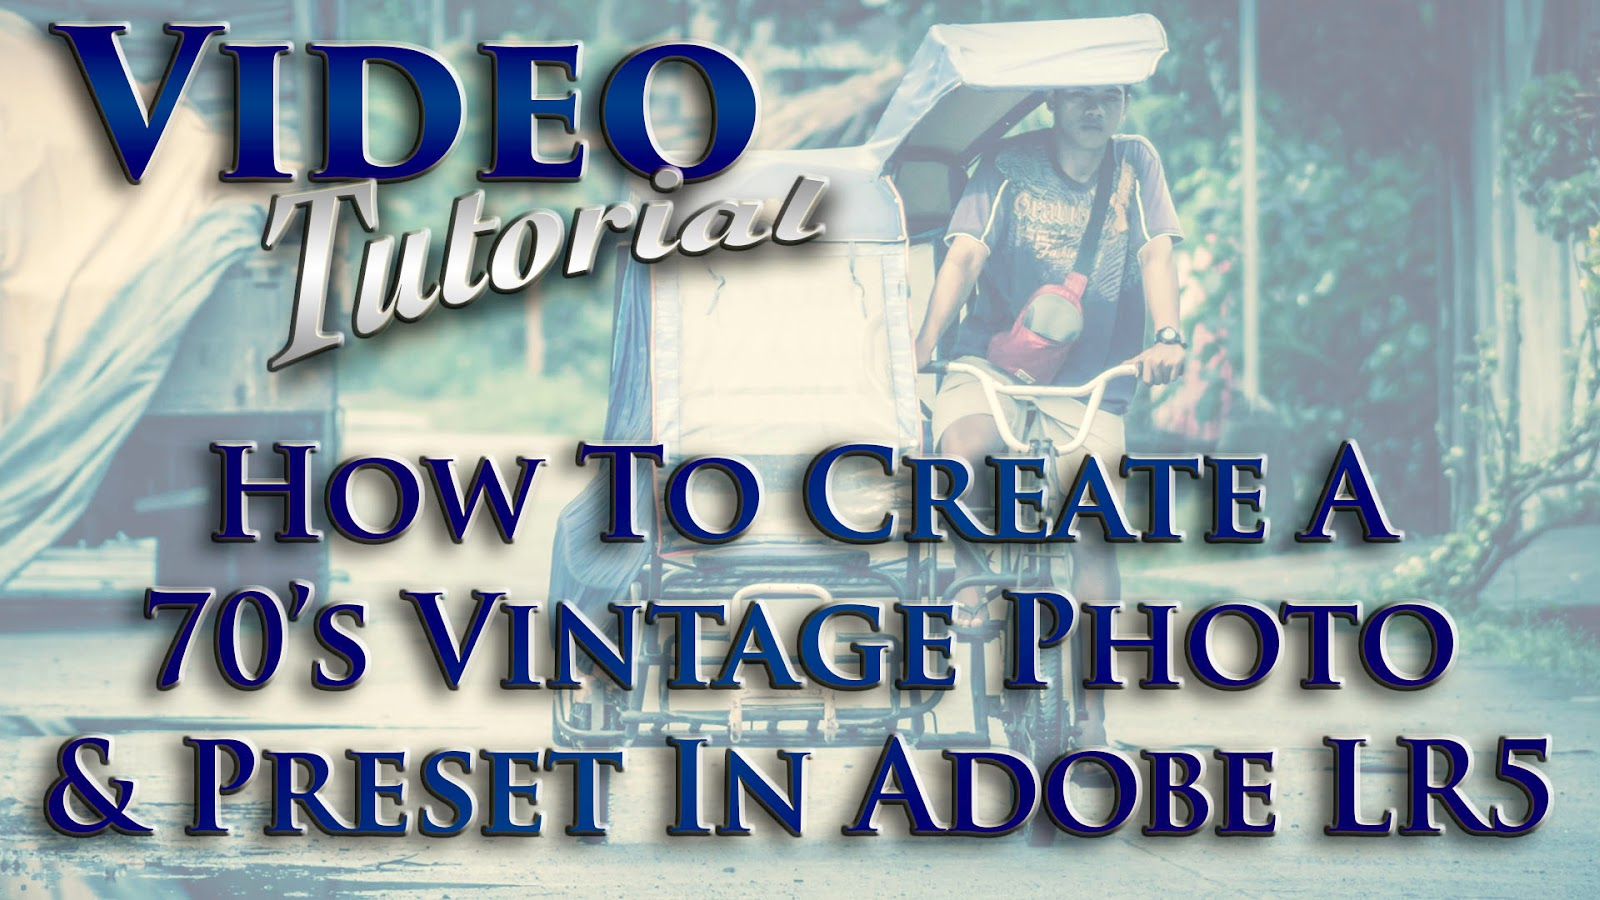 Learn How To Create A 70's Vintage Photo & Preset In Adobe Lightroom 5